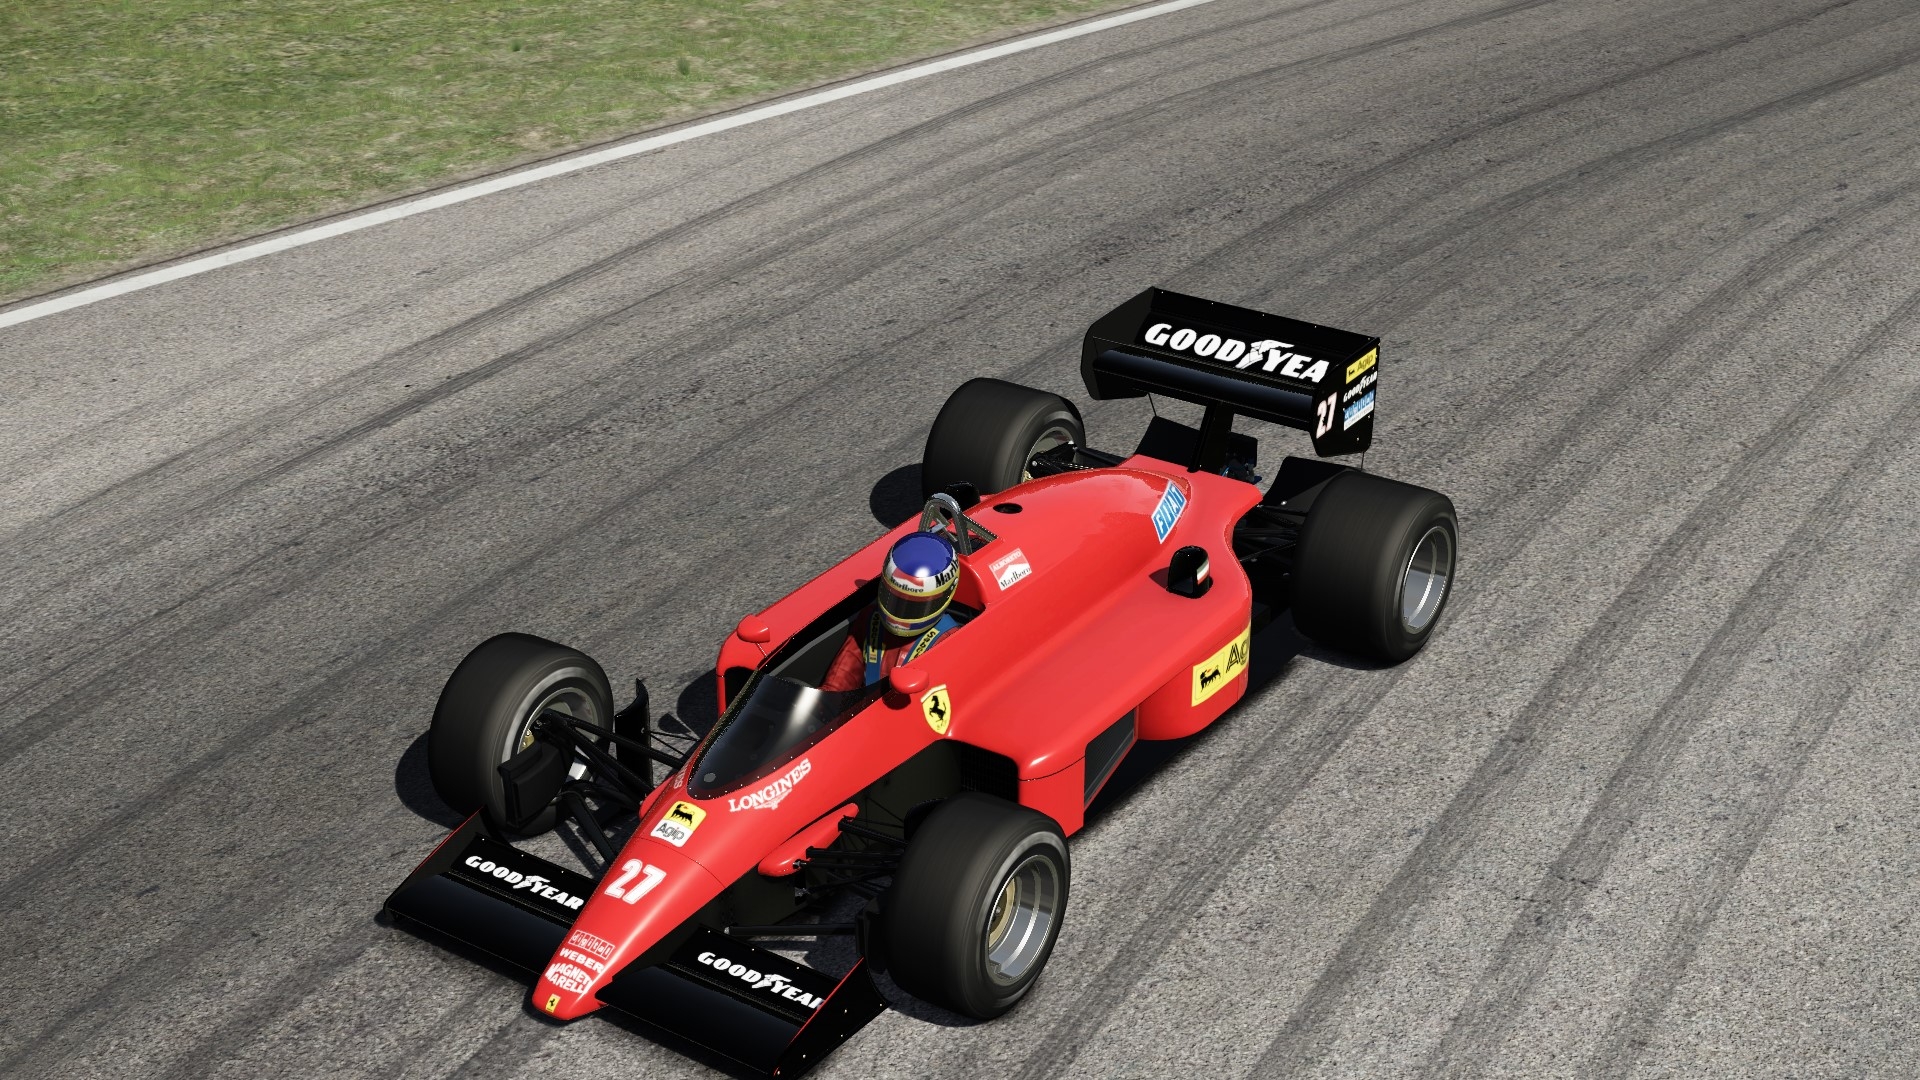 Screenshot_lotus_98t_imola_24-7-2014-0-29-58.jpg